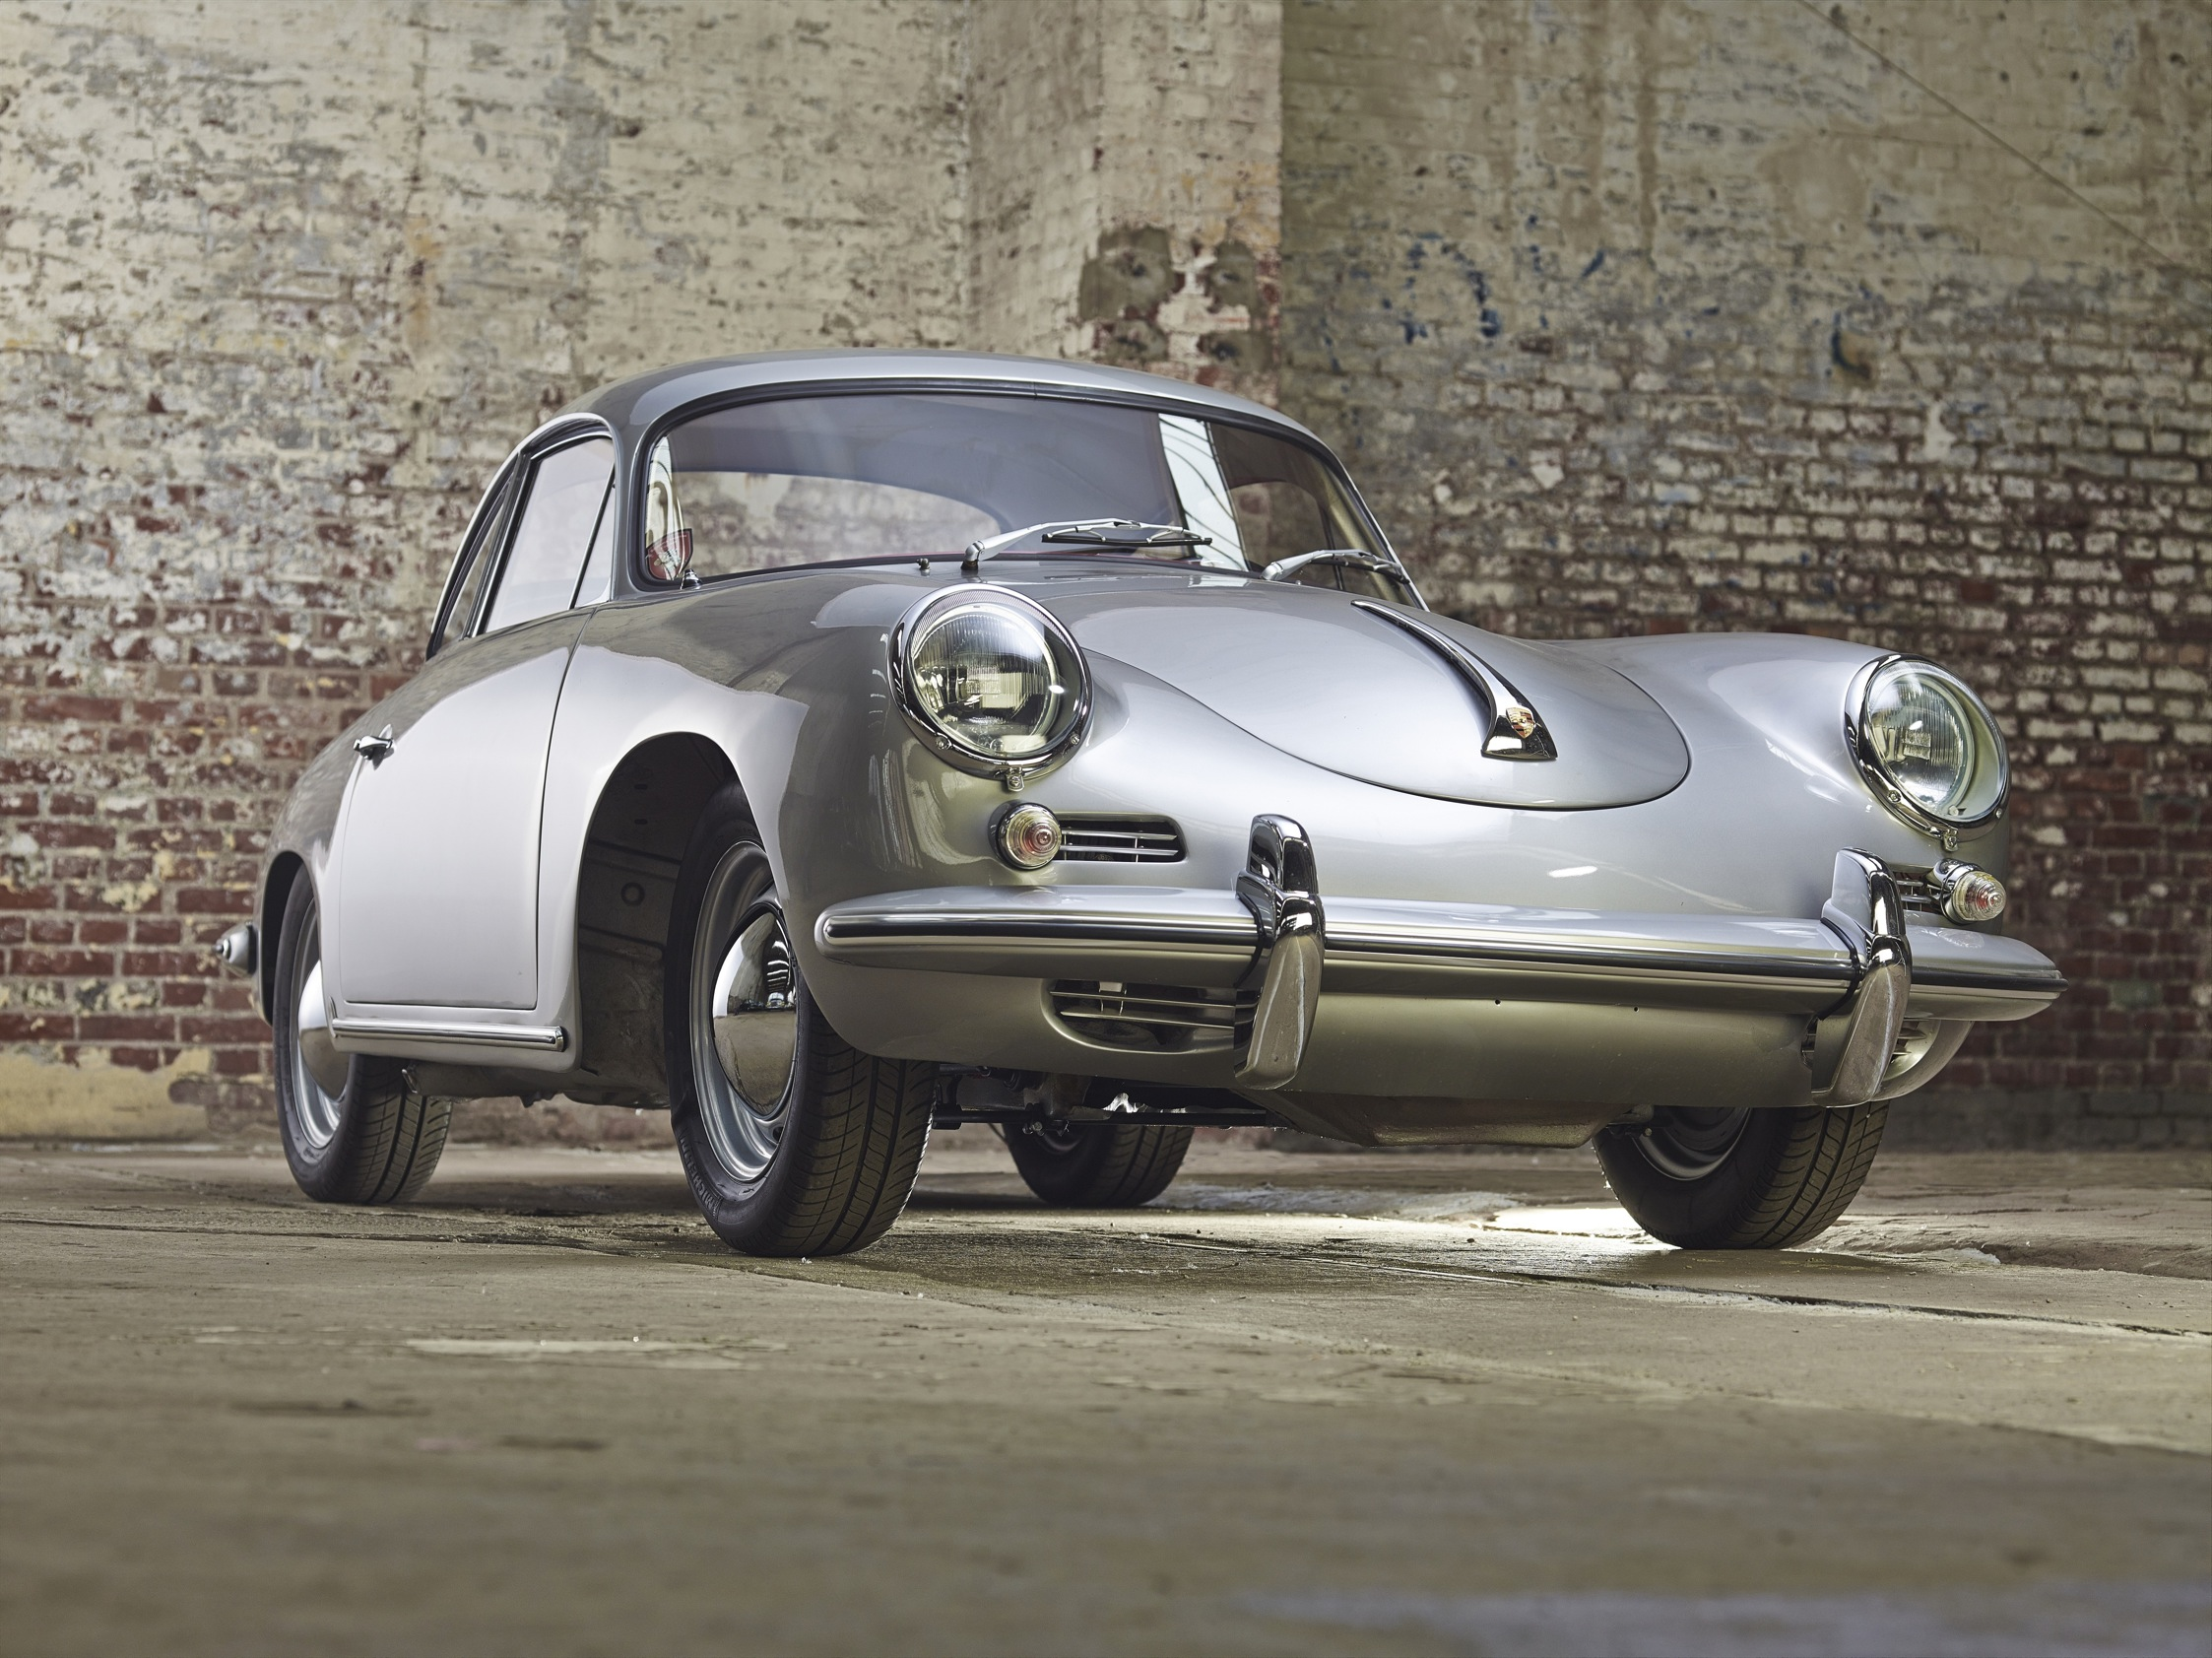 Porsche 356 B 1600 Super 90 Coupé